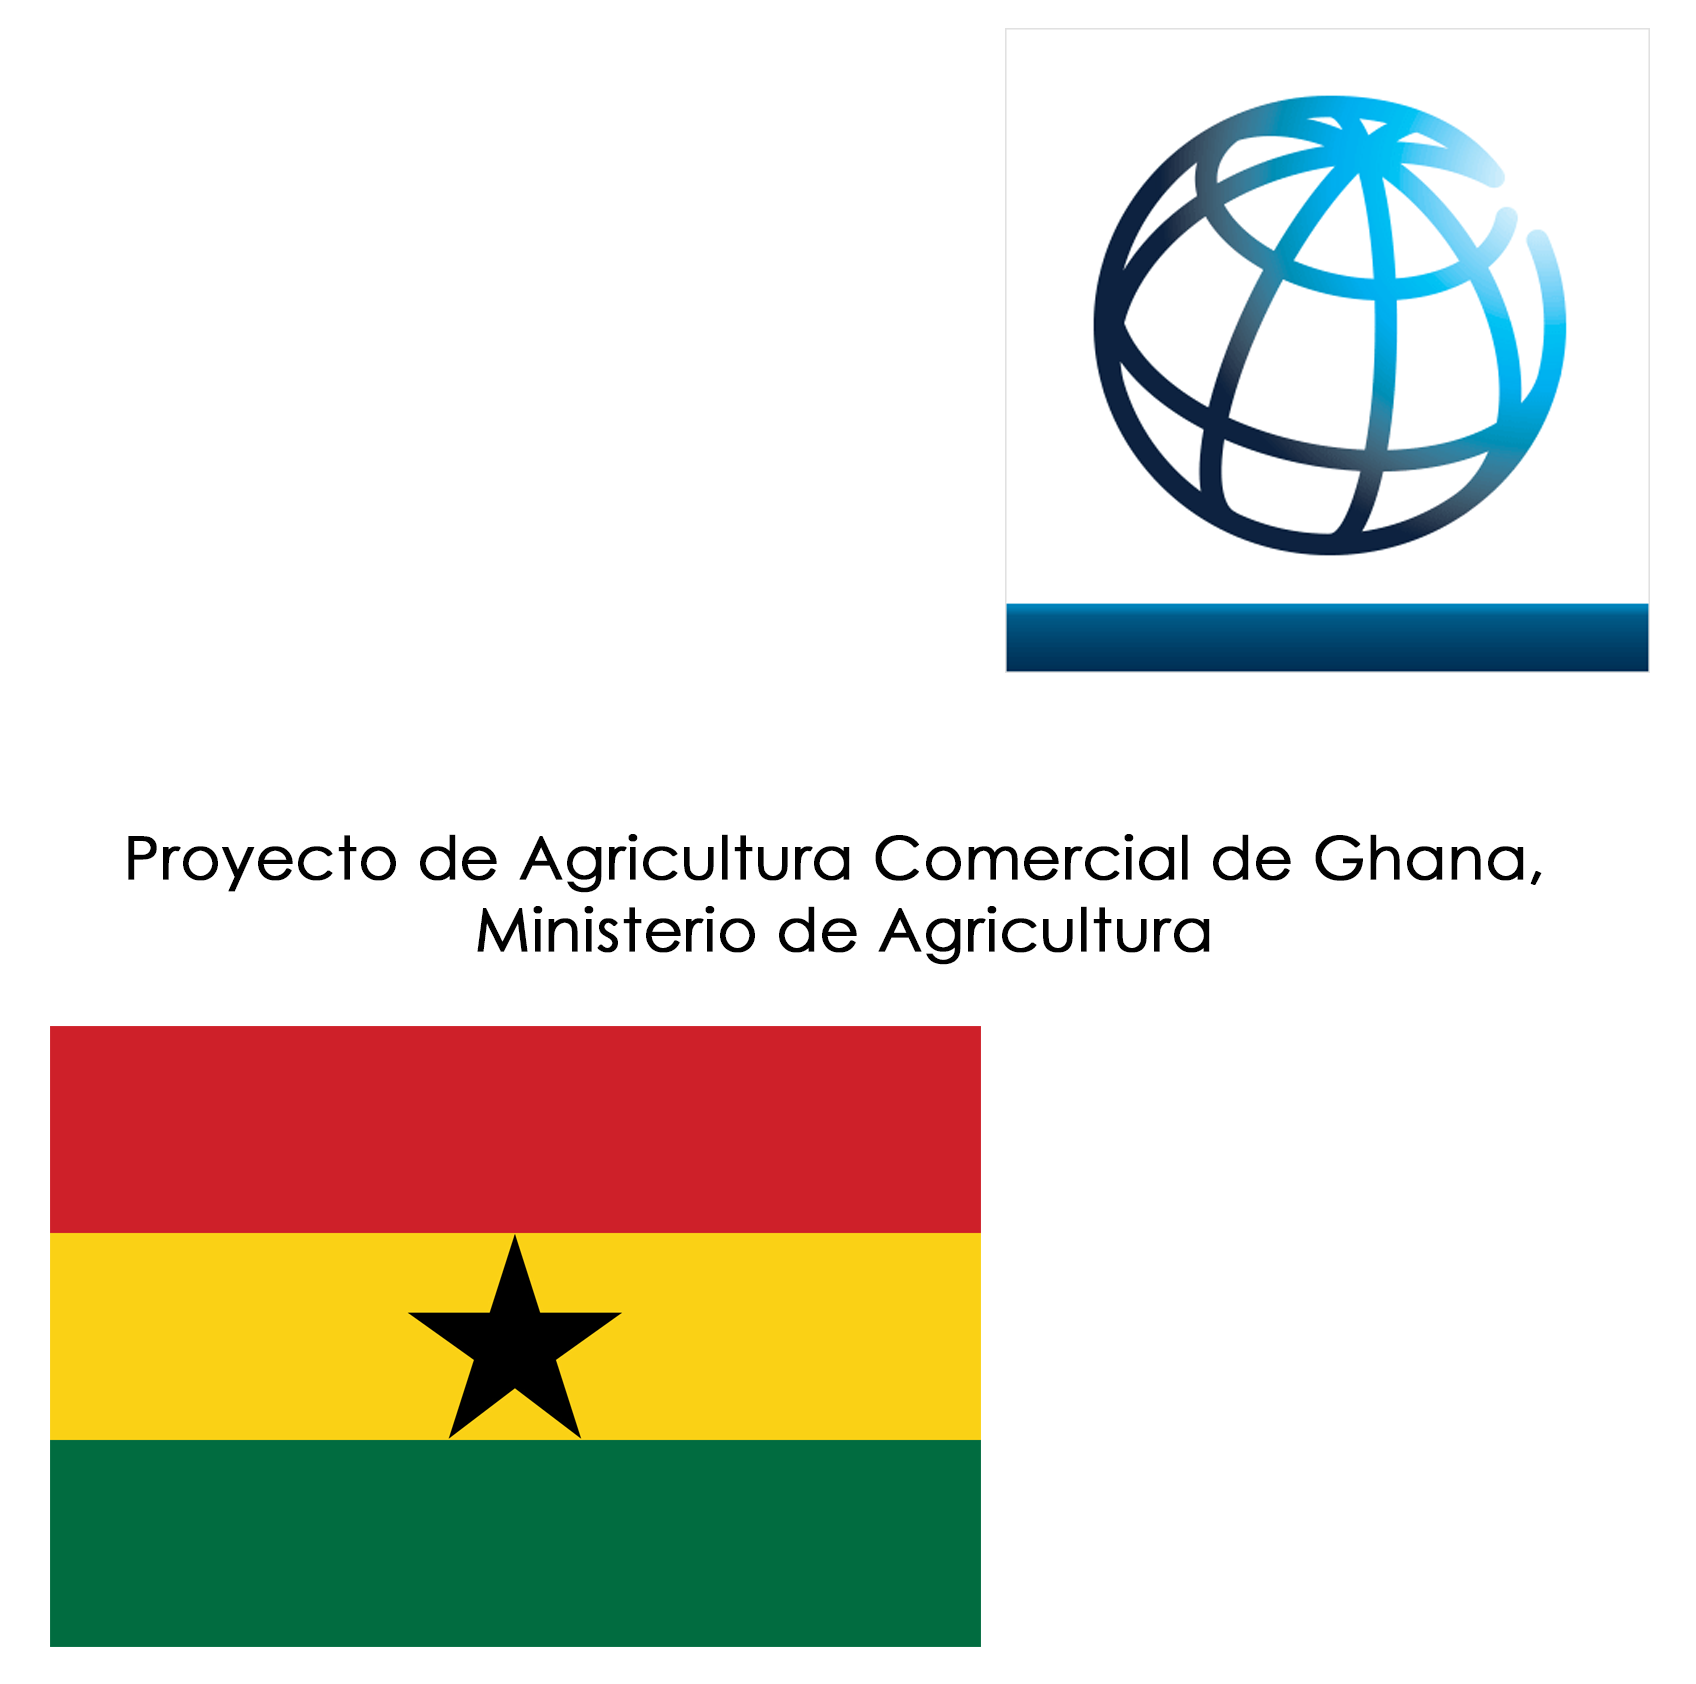 Pre-feasibility study for construction of silo storages in Northern Ghana through PPP